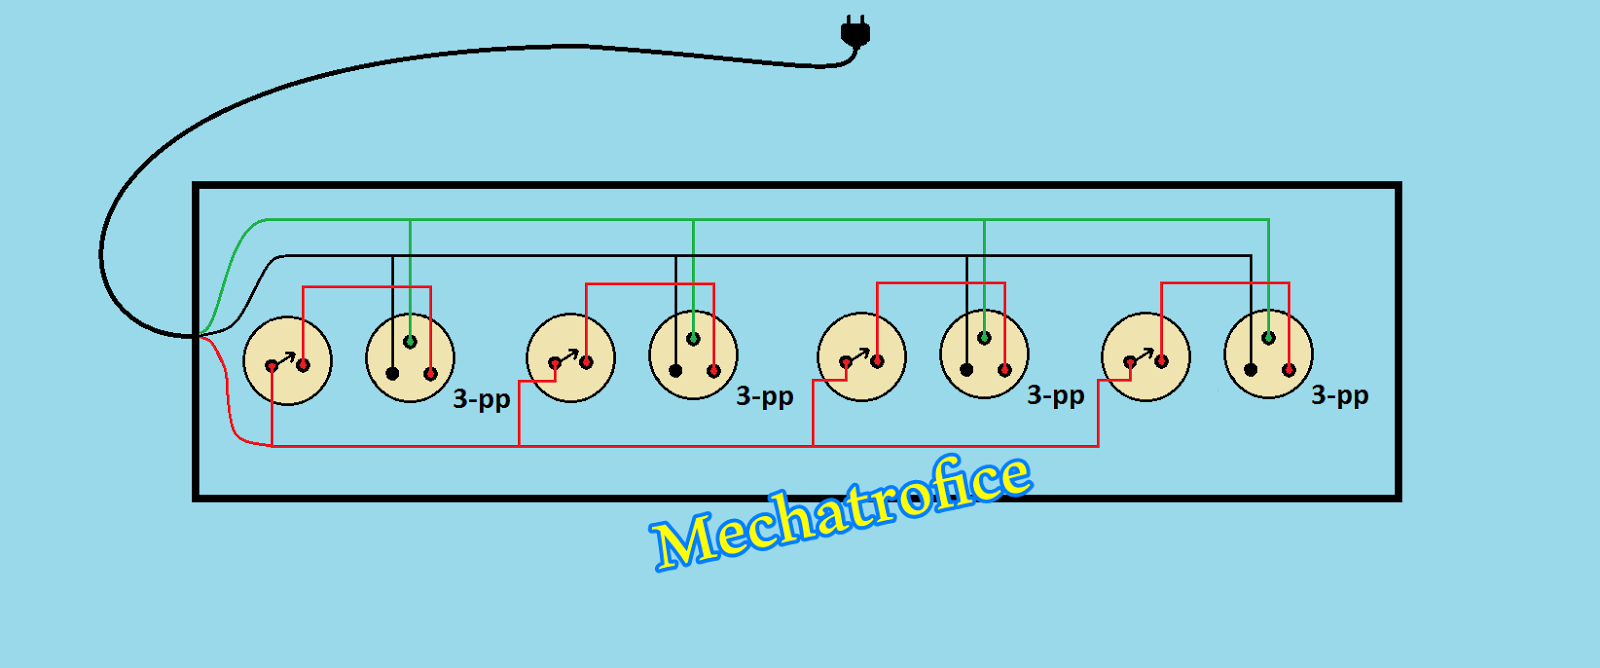 extension cord wiring diagram box circuit schematic